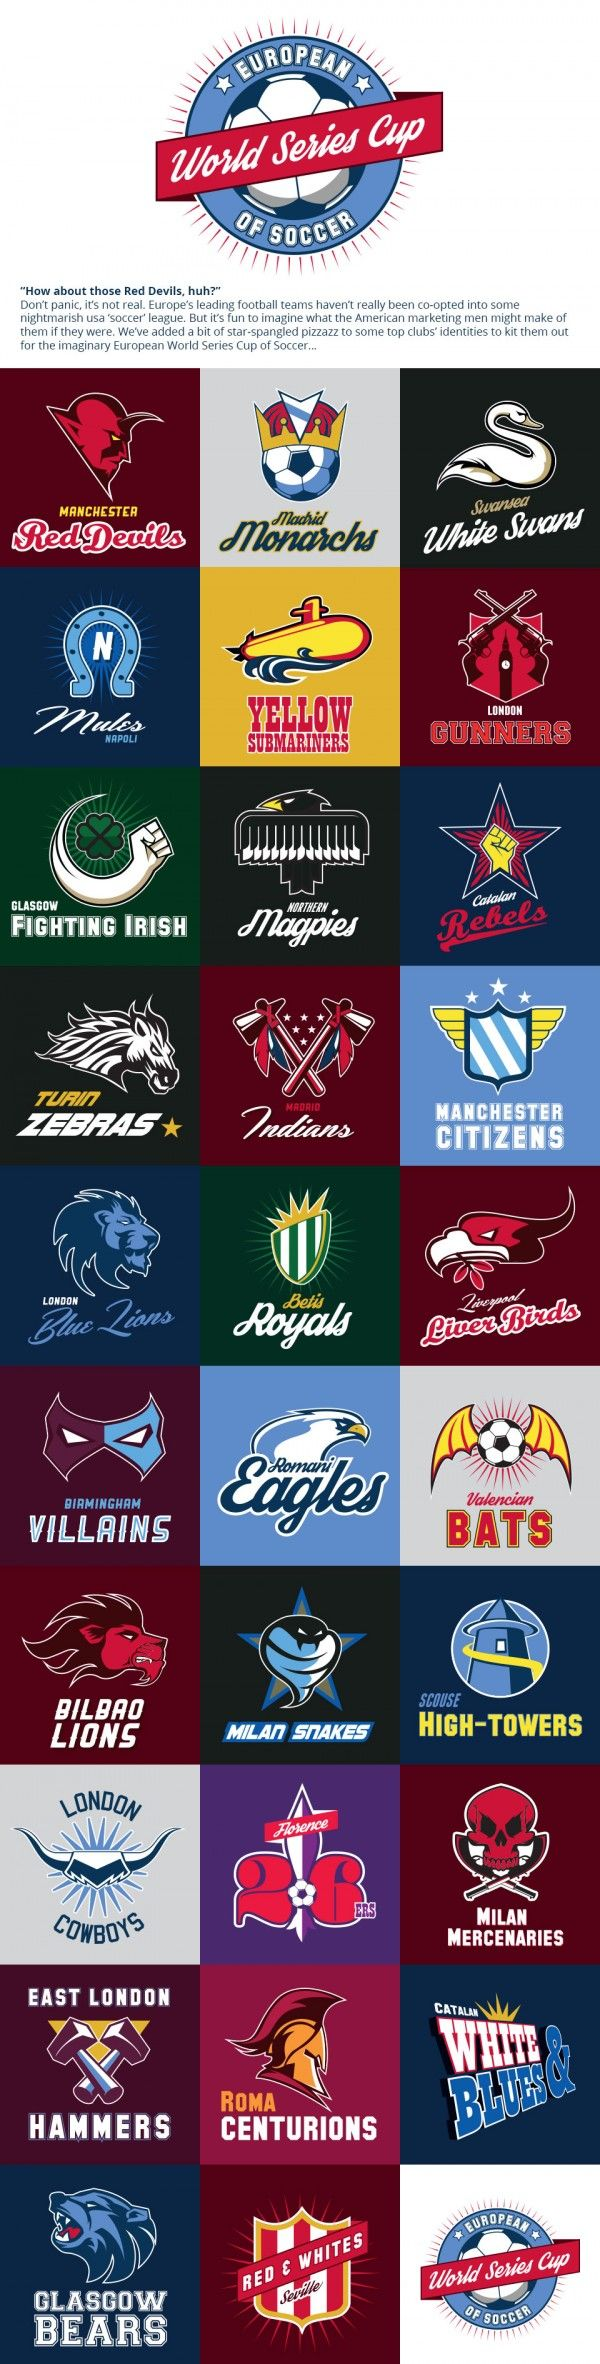 Futball club logos reimagined as American sports teams